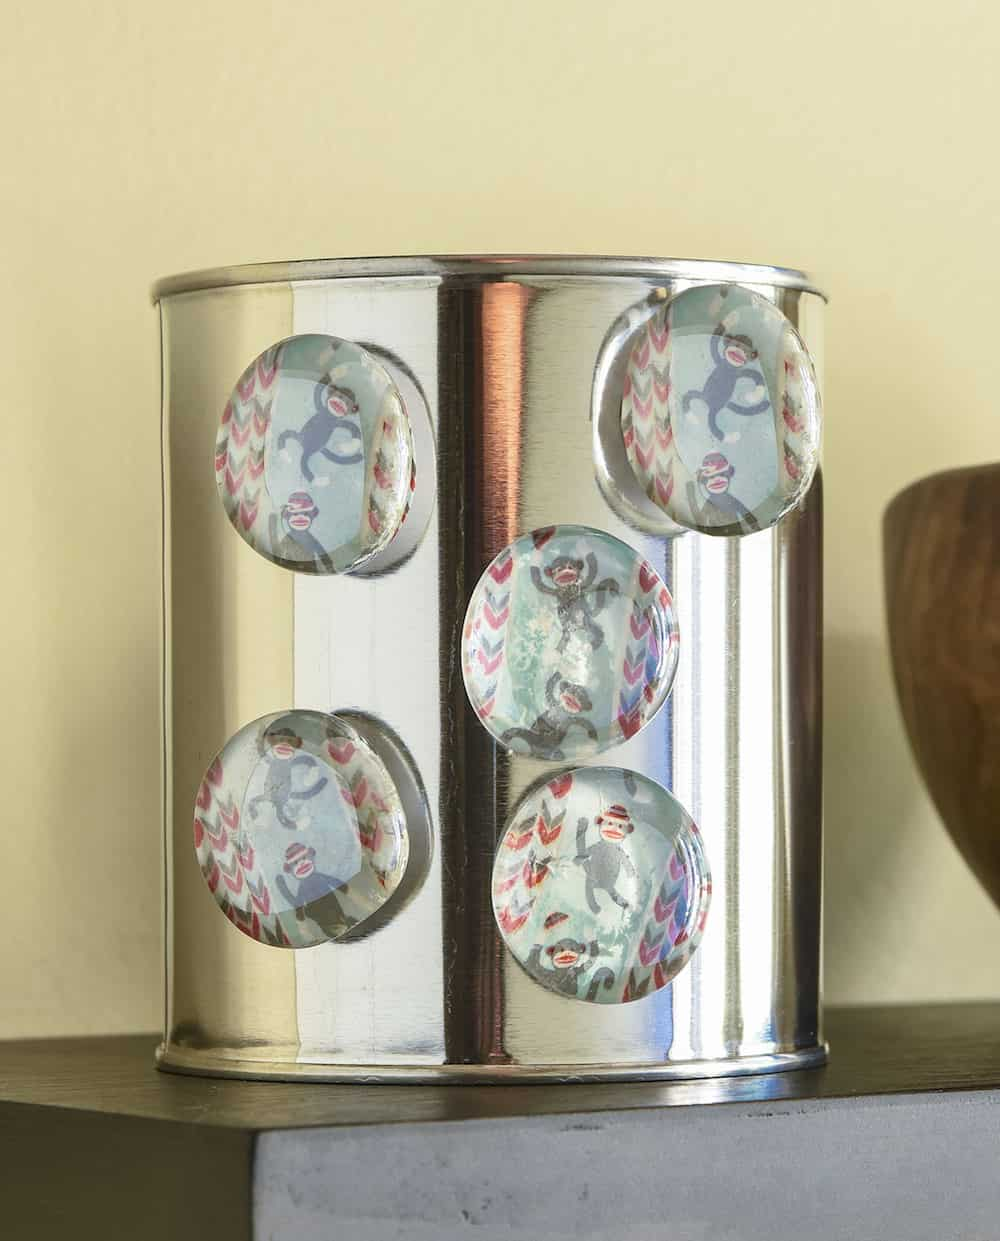 Learn how to make these easy personalized magnets using washi tape, flat glass marbles, and spray adhesive. You can make a ton of these for gifts or for your own fridge using a few simple supplies!